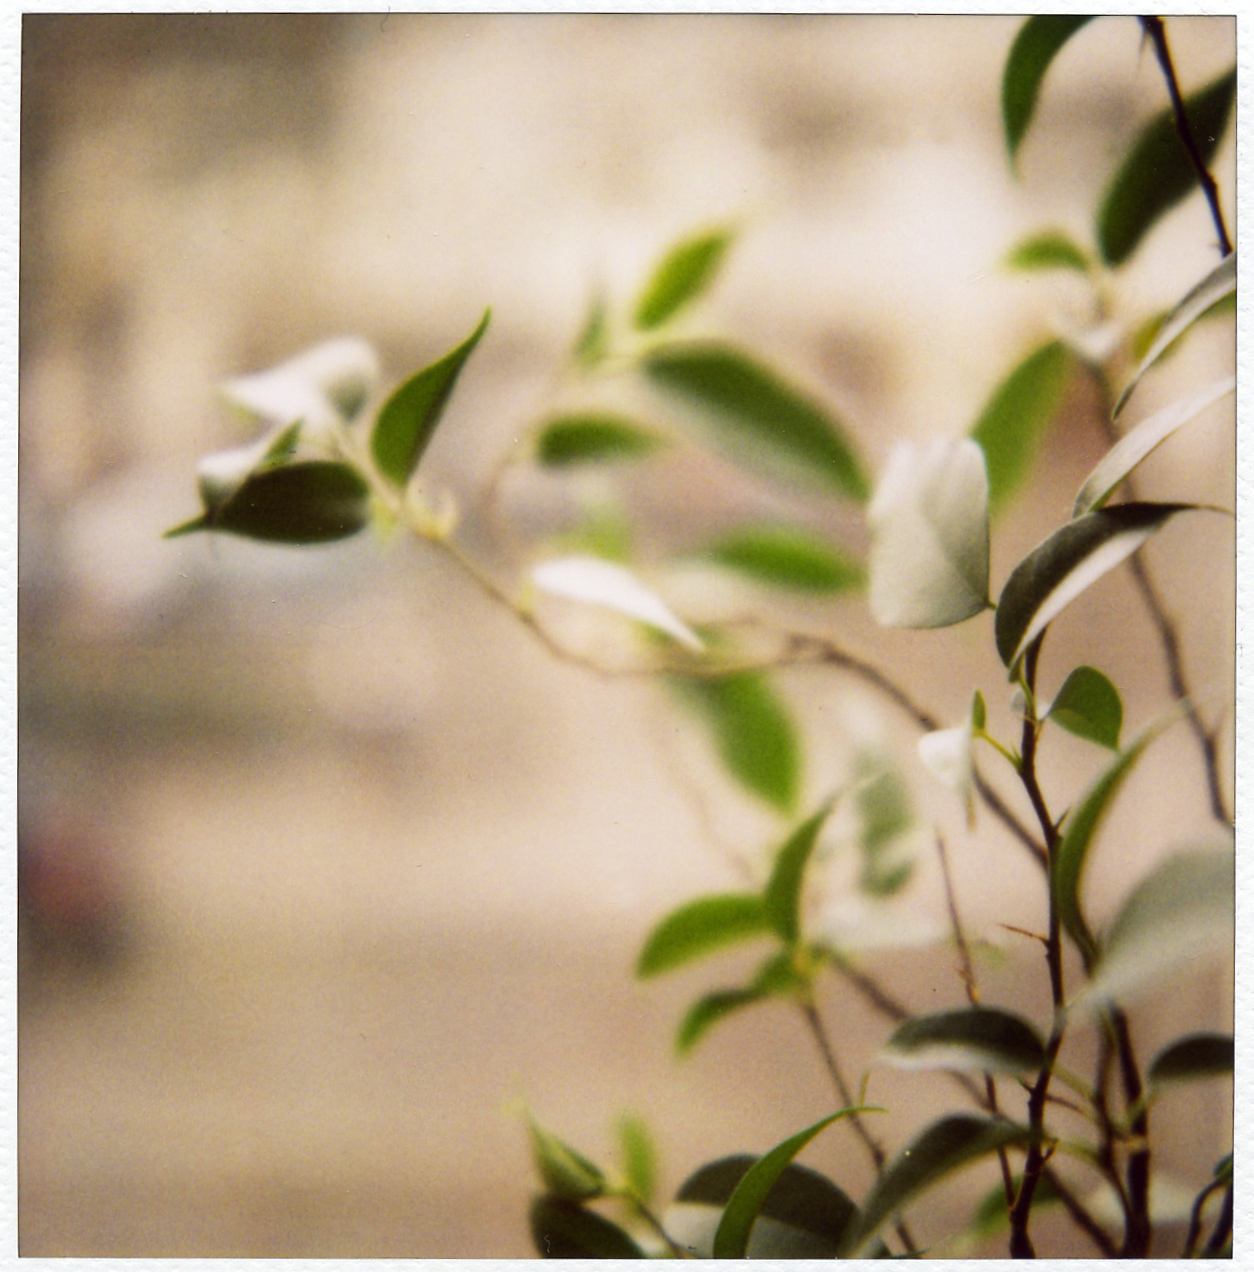 First SX-70 shots